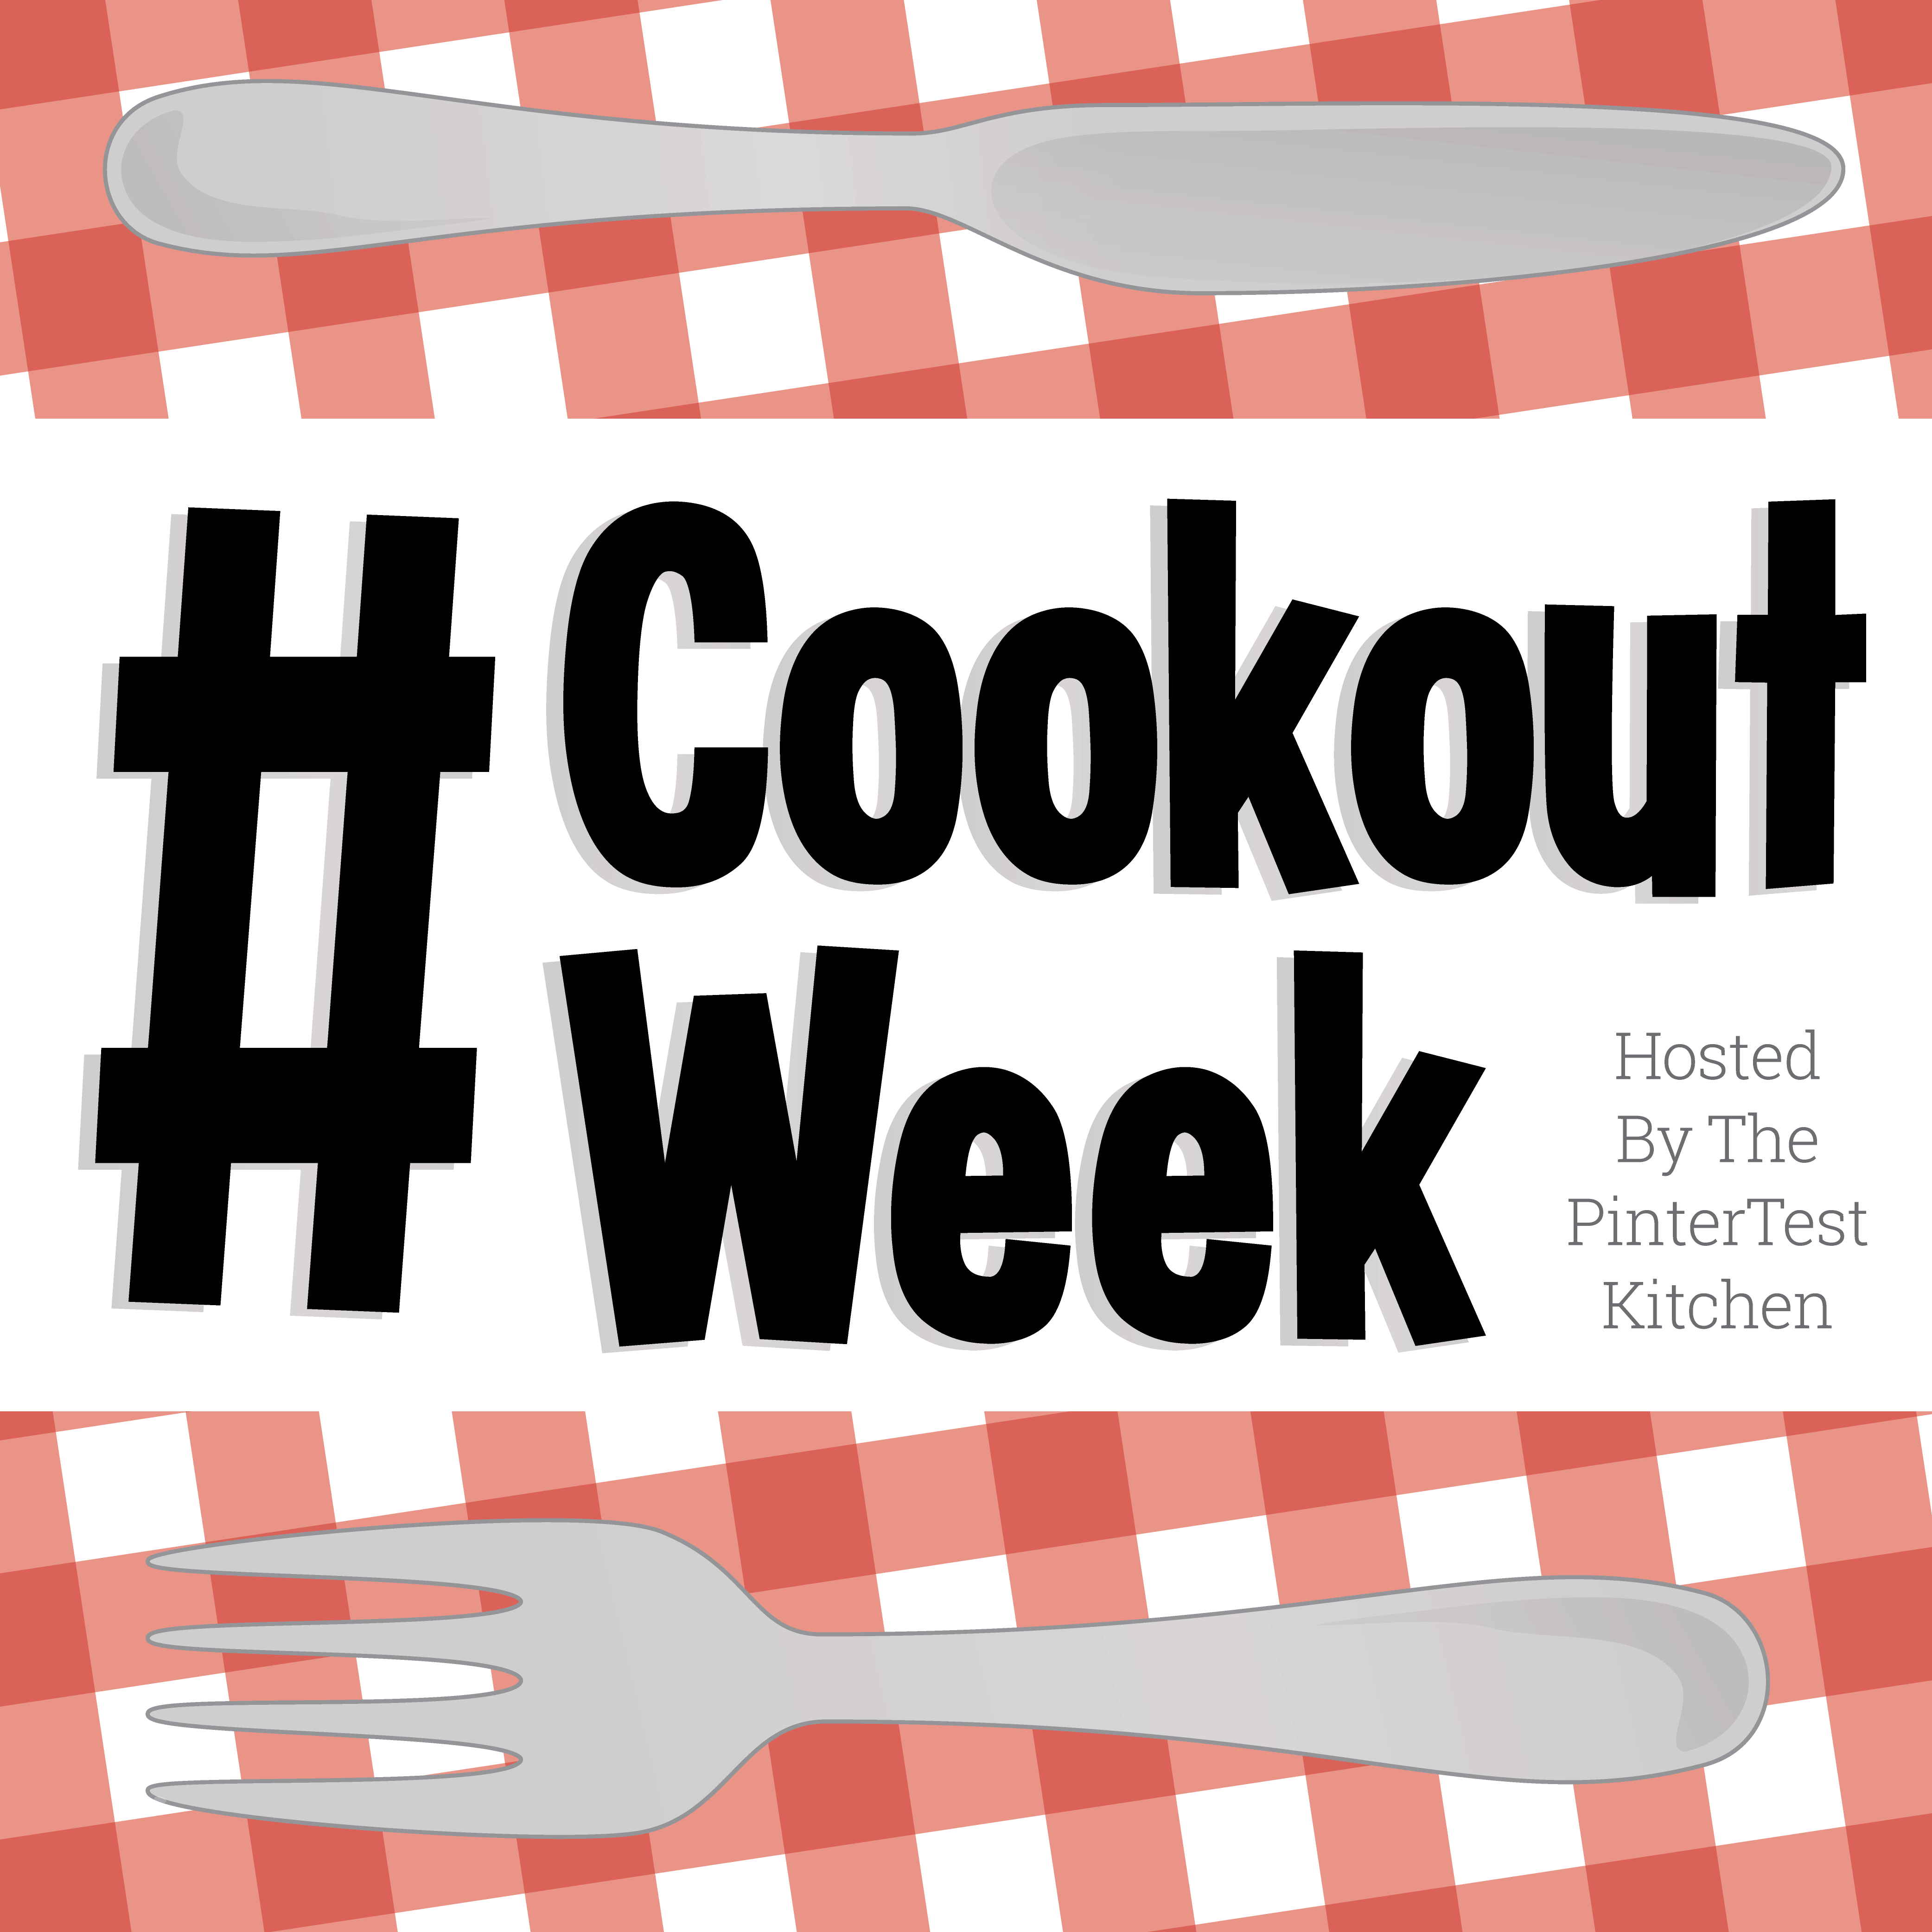 A photo sharing #cookoutweek with giveaway for 2018 to track the amazing recipes created by food bloggers for summer cookout fun.